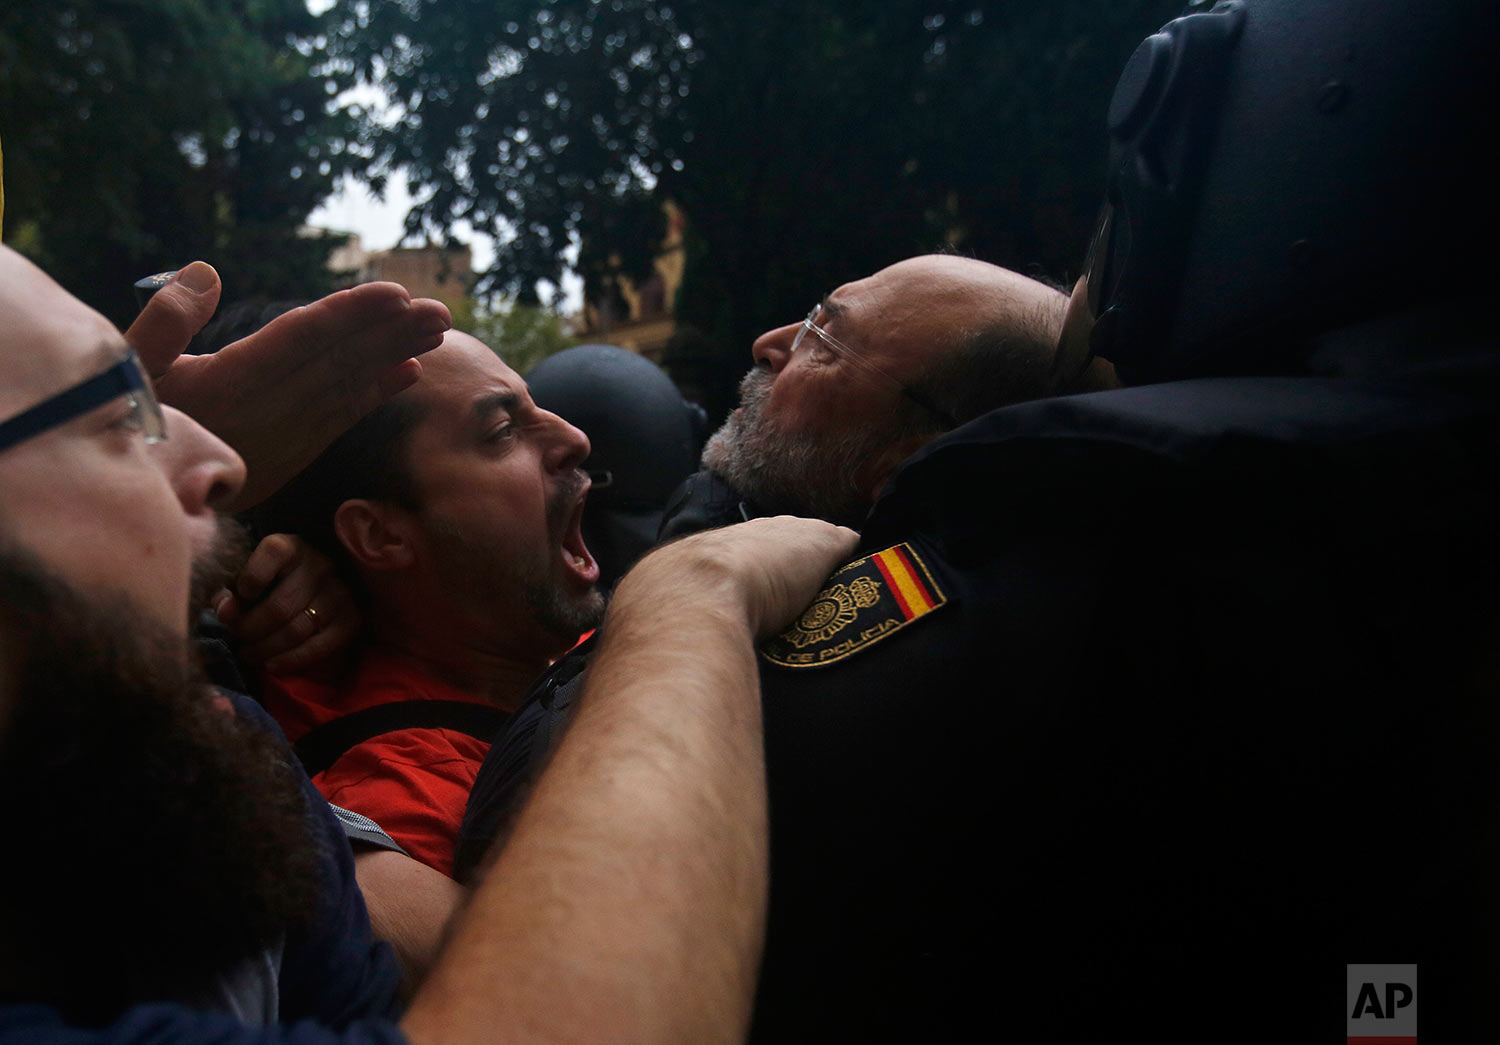 Spanish National Police pushes away Pro-referendum supporters outside the Ramon Llull school assigned to be a polling station by the Catalan government in Barcelona, Spain, early Sunday, Oct. 1, 2017. Catalan pro-referendum supporters vowed to ignore a police ultimatum to leave the schools they are occupying to use in a vote seeking independence from Spain. (AP Photo/Emilio Morenatti)